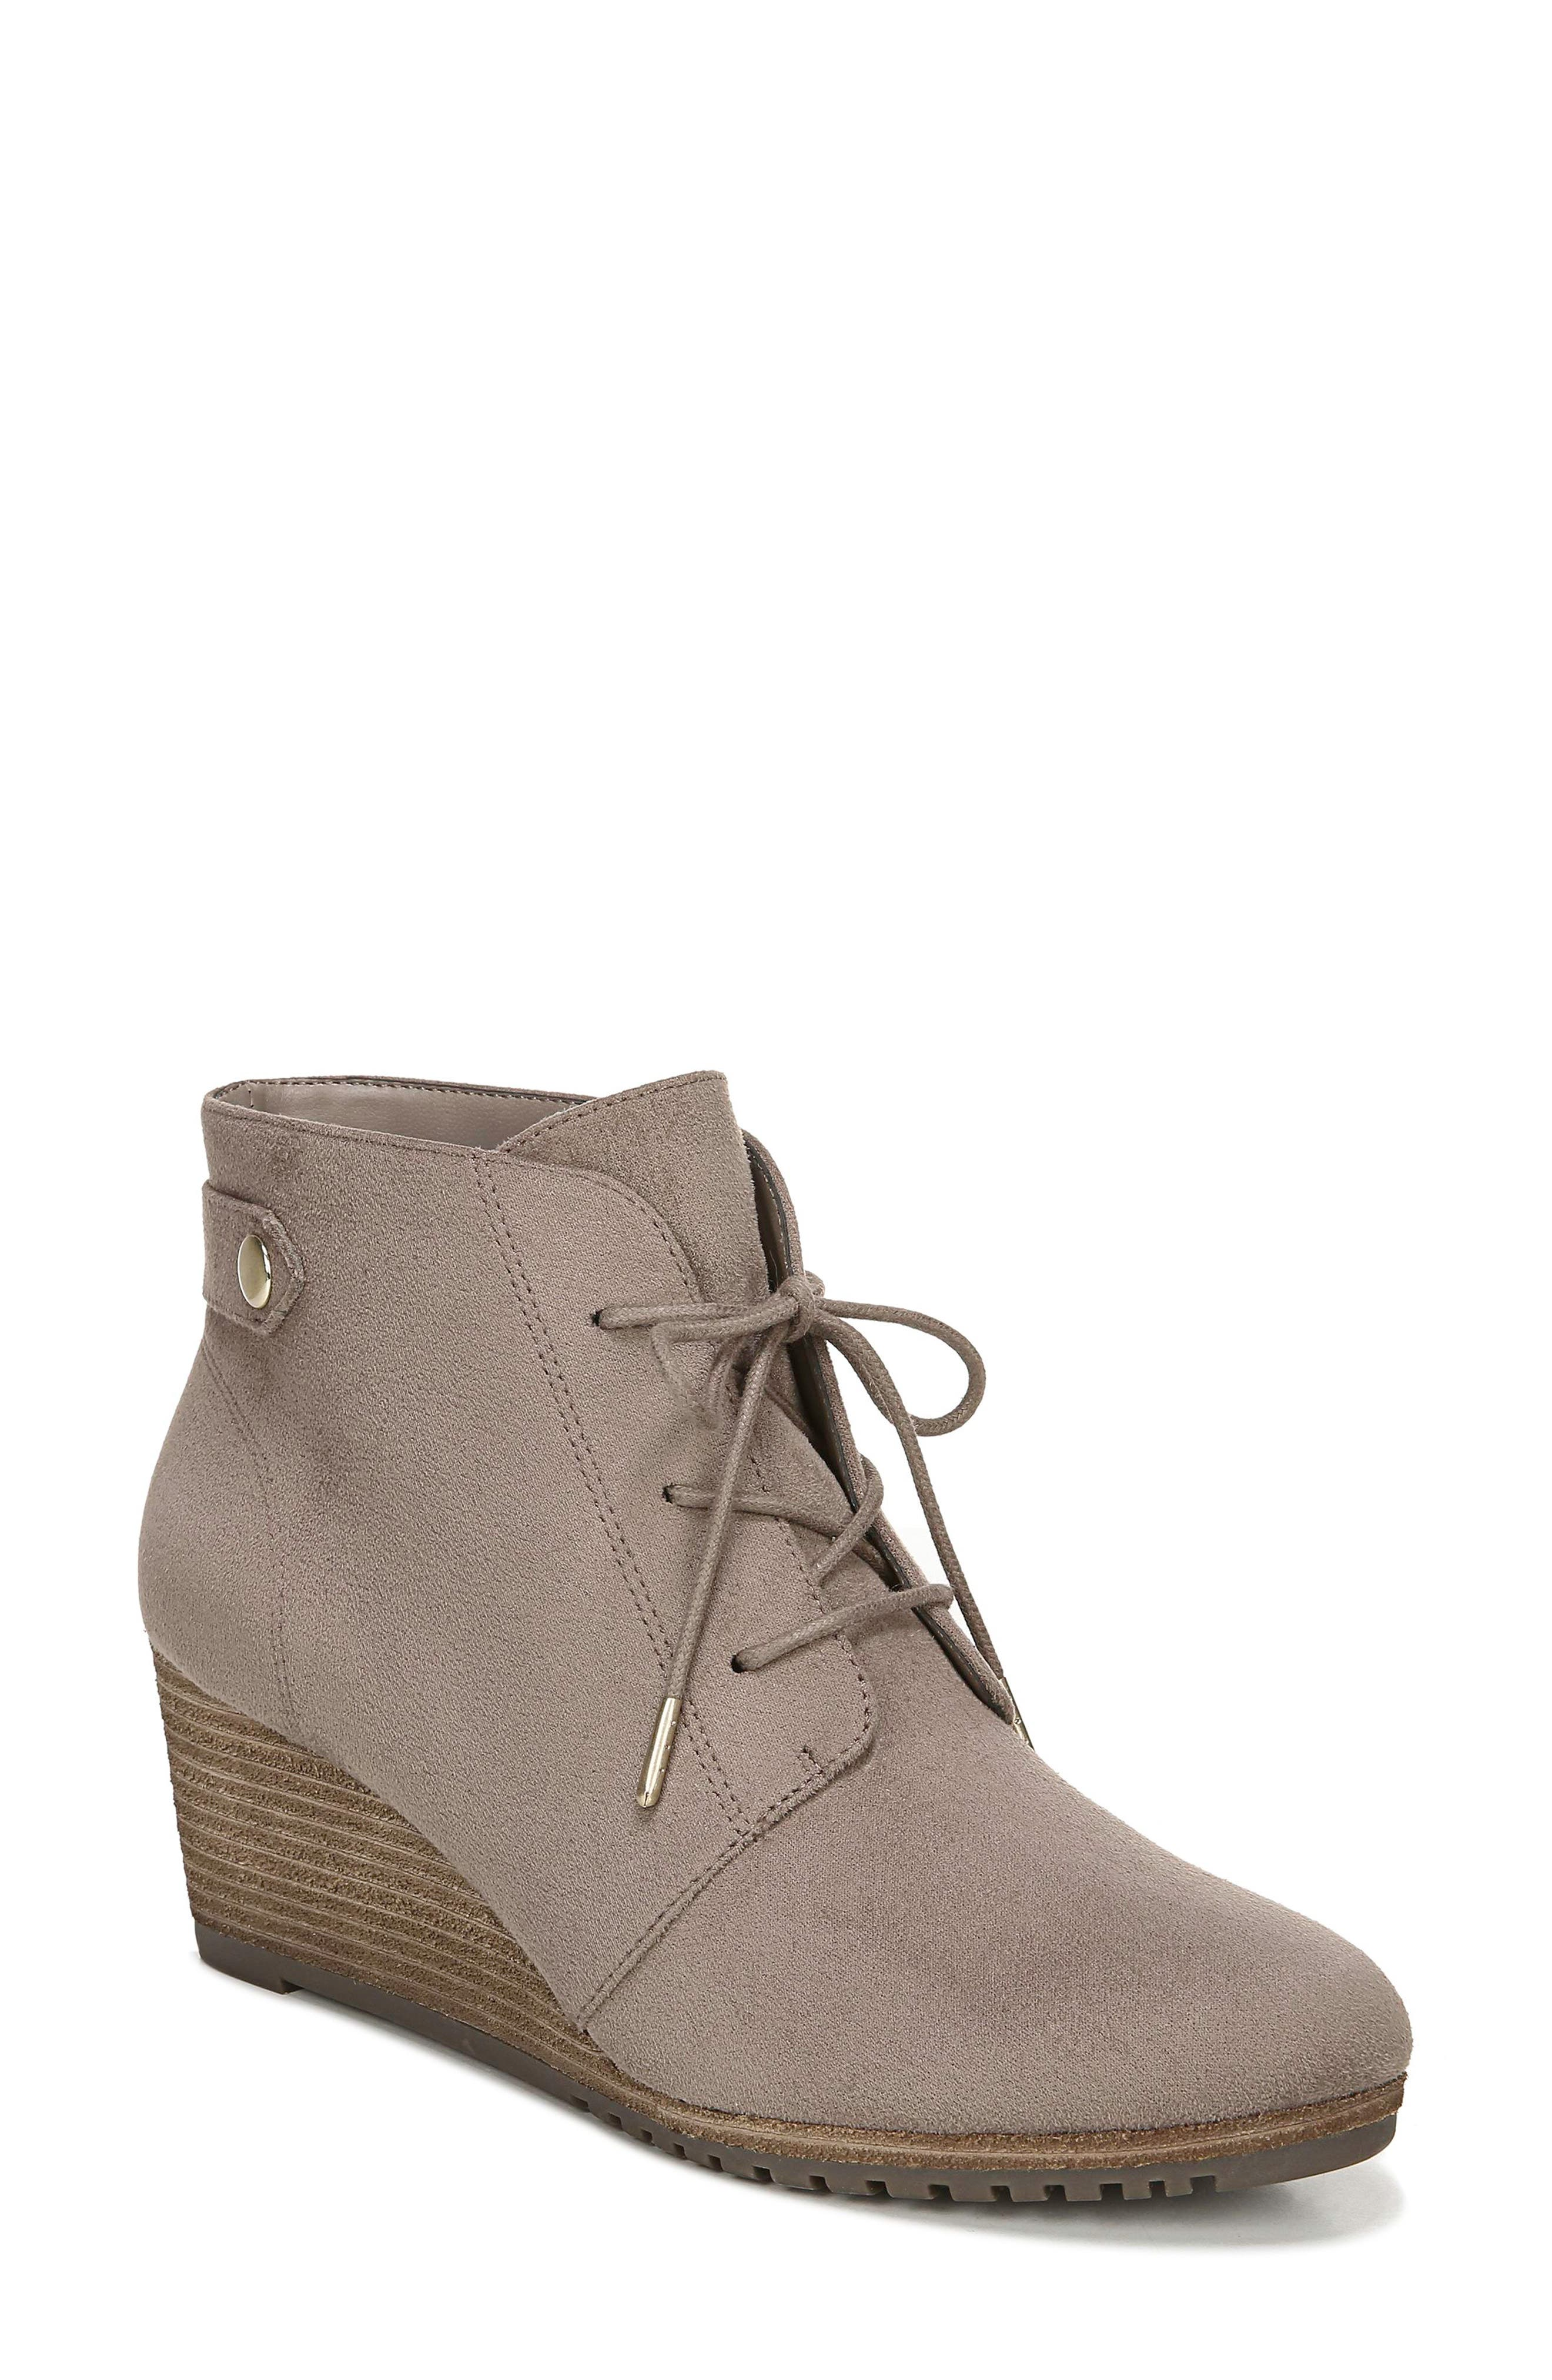 Dr. Scholl's Conquer Wedge Bootie (Women)